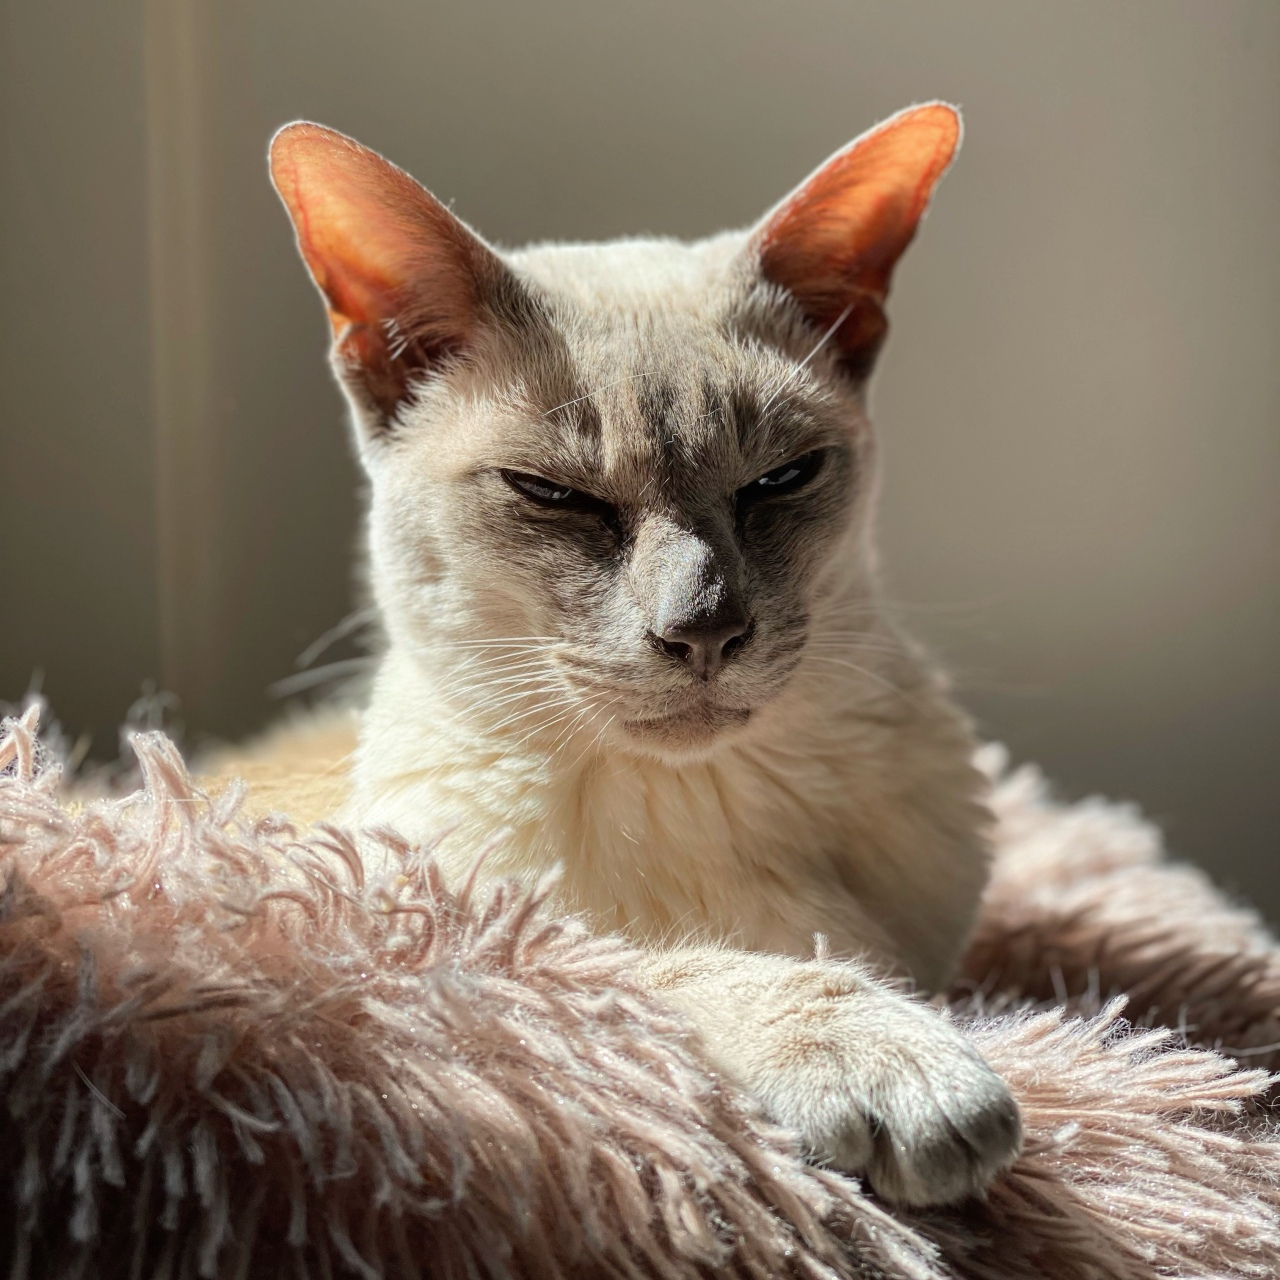 Sissy the lilac Tonkinese cat lying in her bed looking pensive as the sun casts shadows on her face